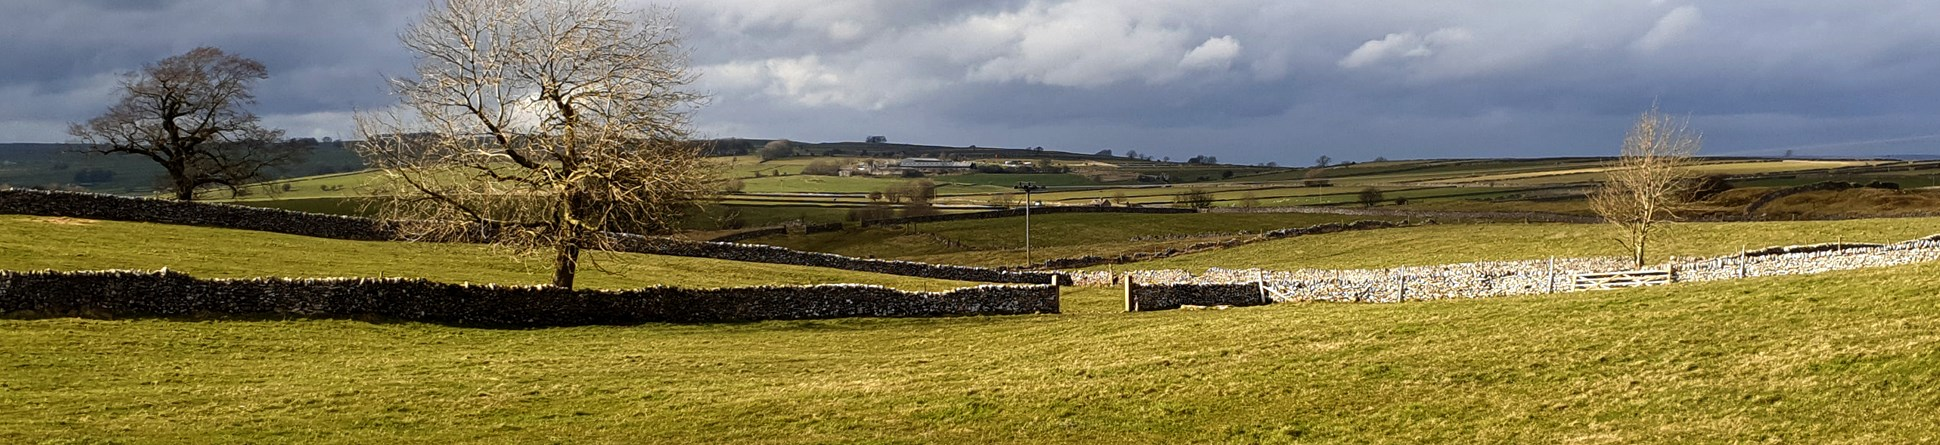 Magpie Mine, a scheduled monument near Bakewell, showing rolling fields and drystone walls.